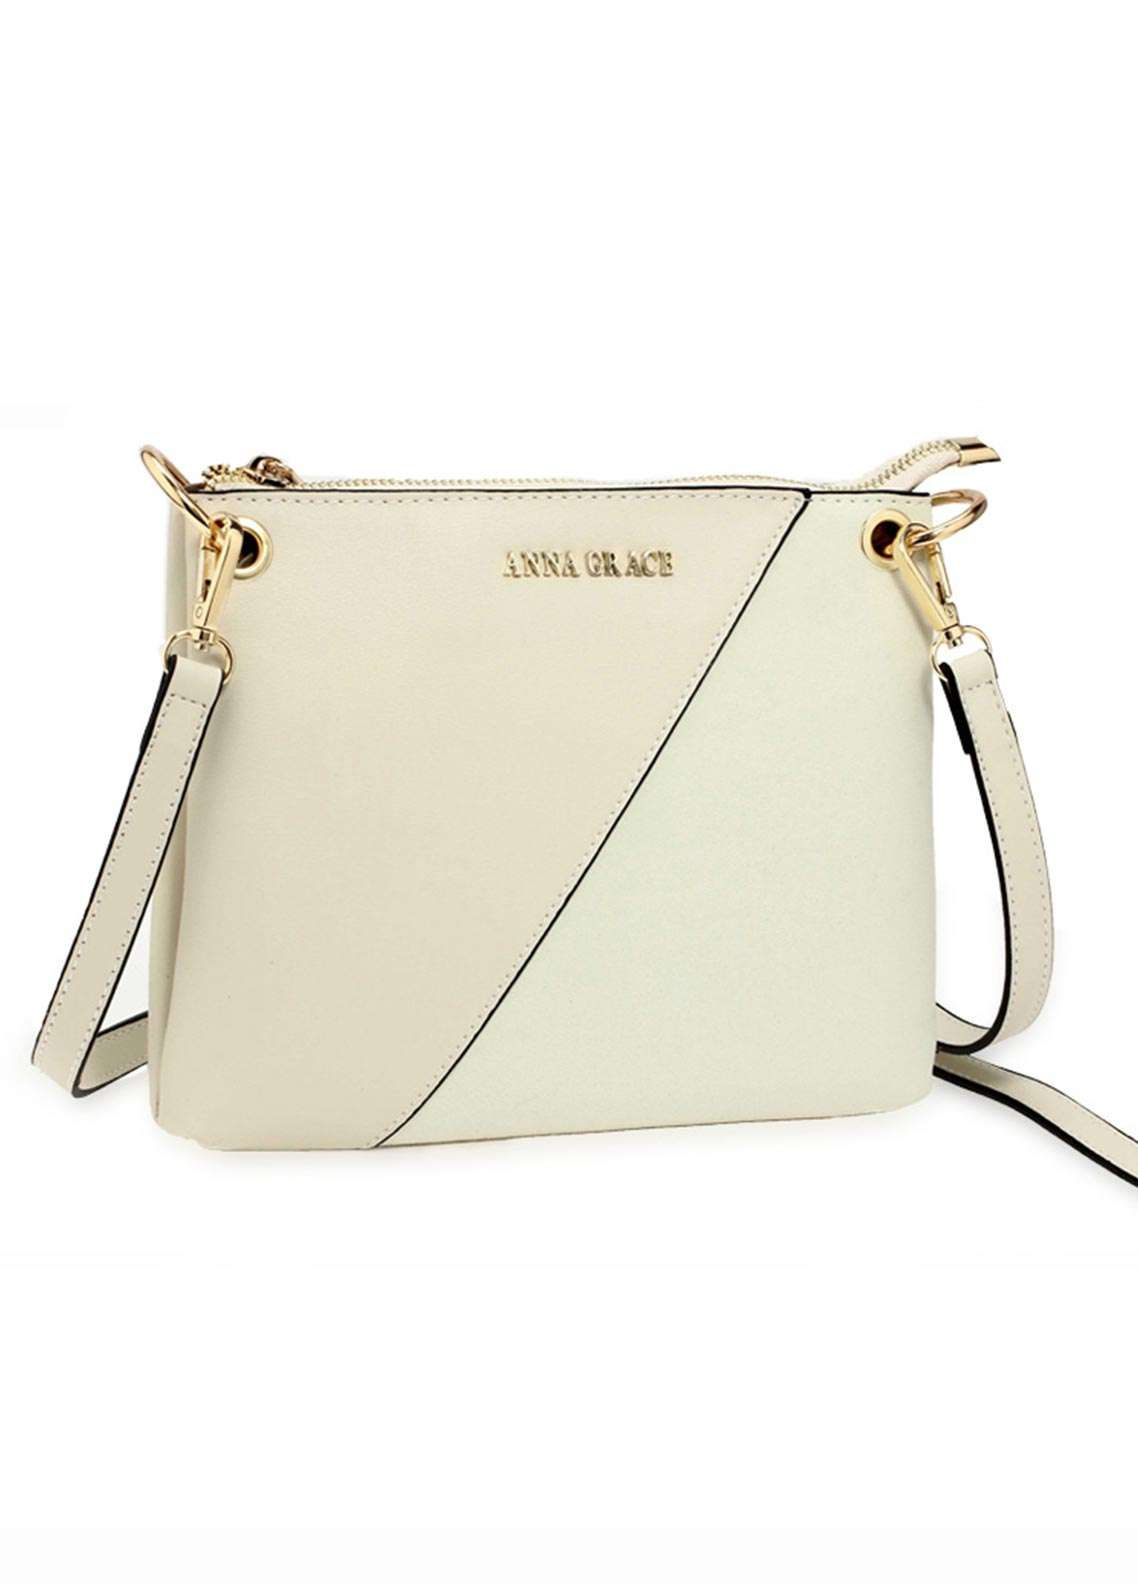 Anna Grace London Faux Leather Crossbody  Bags  for Women  Nude with Smooth Texture